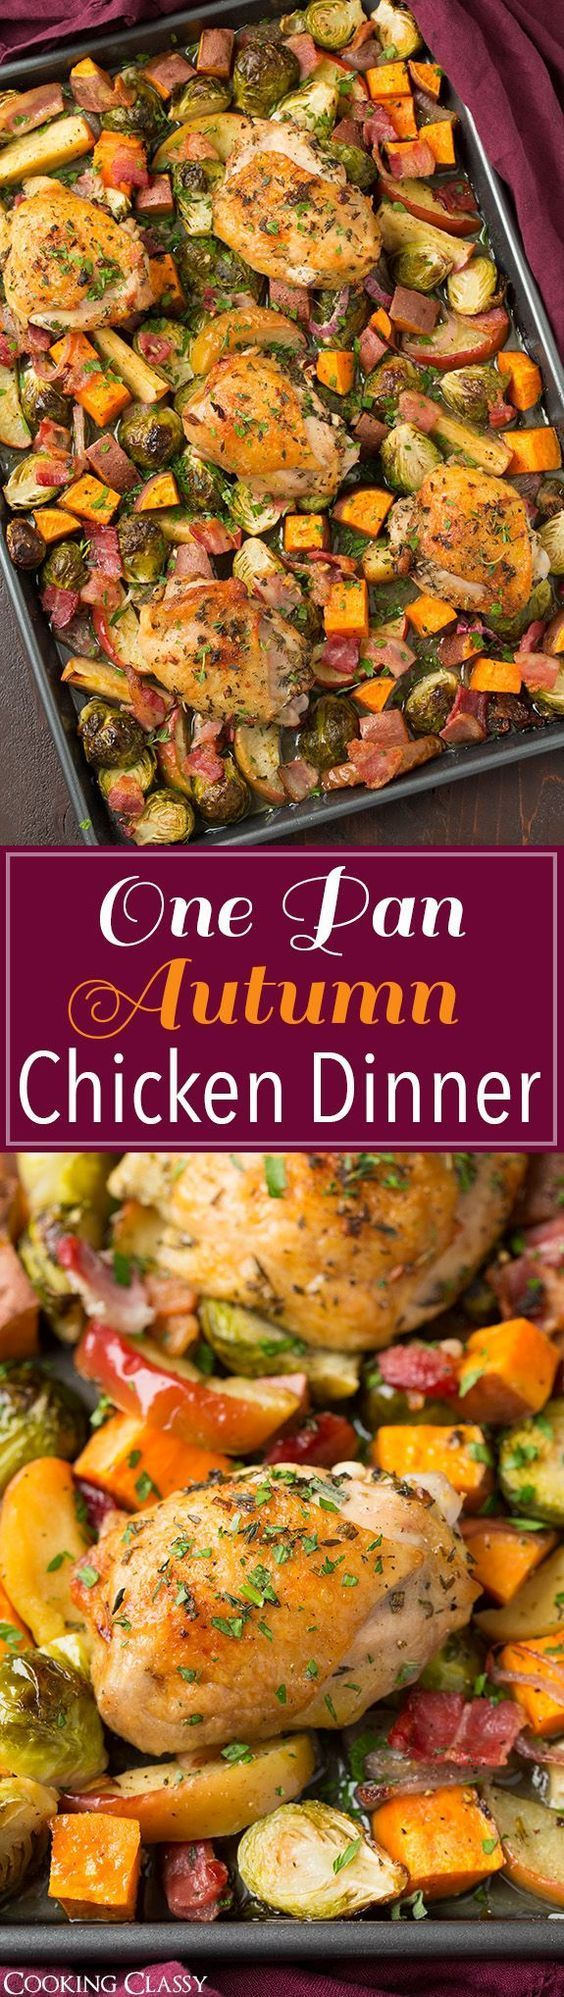 One Pan Autumn Chicken Dinner - easy to make and clean up is a breeze! Brussels sprouts, apples, sweet potatoes, bacon, shallots and herb chicken. Delicious!